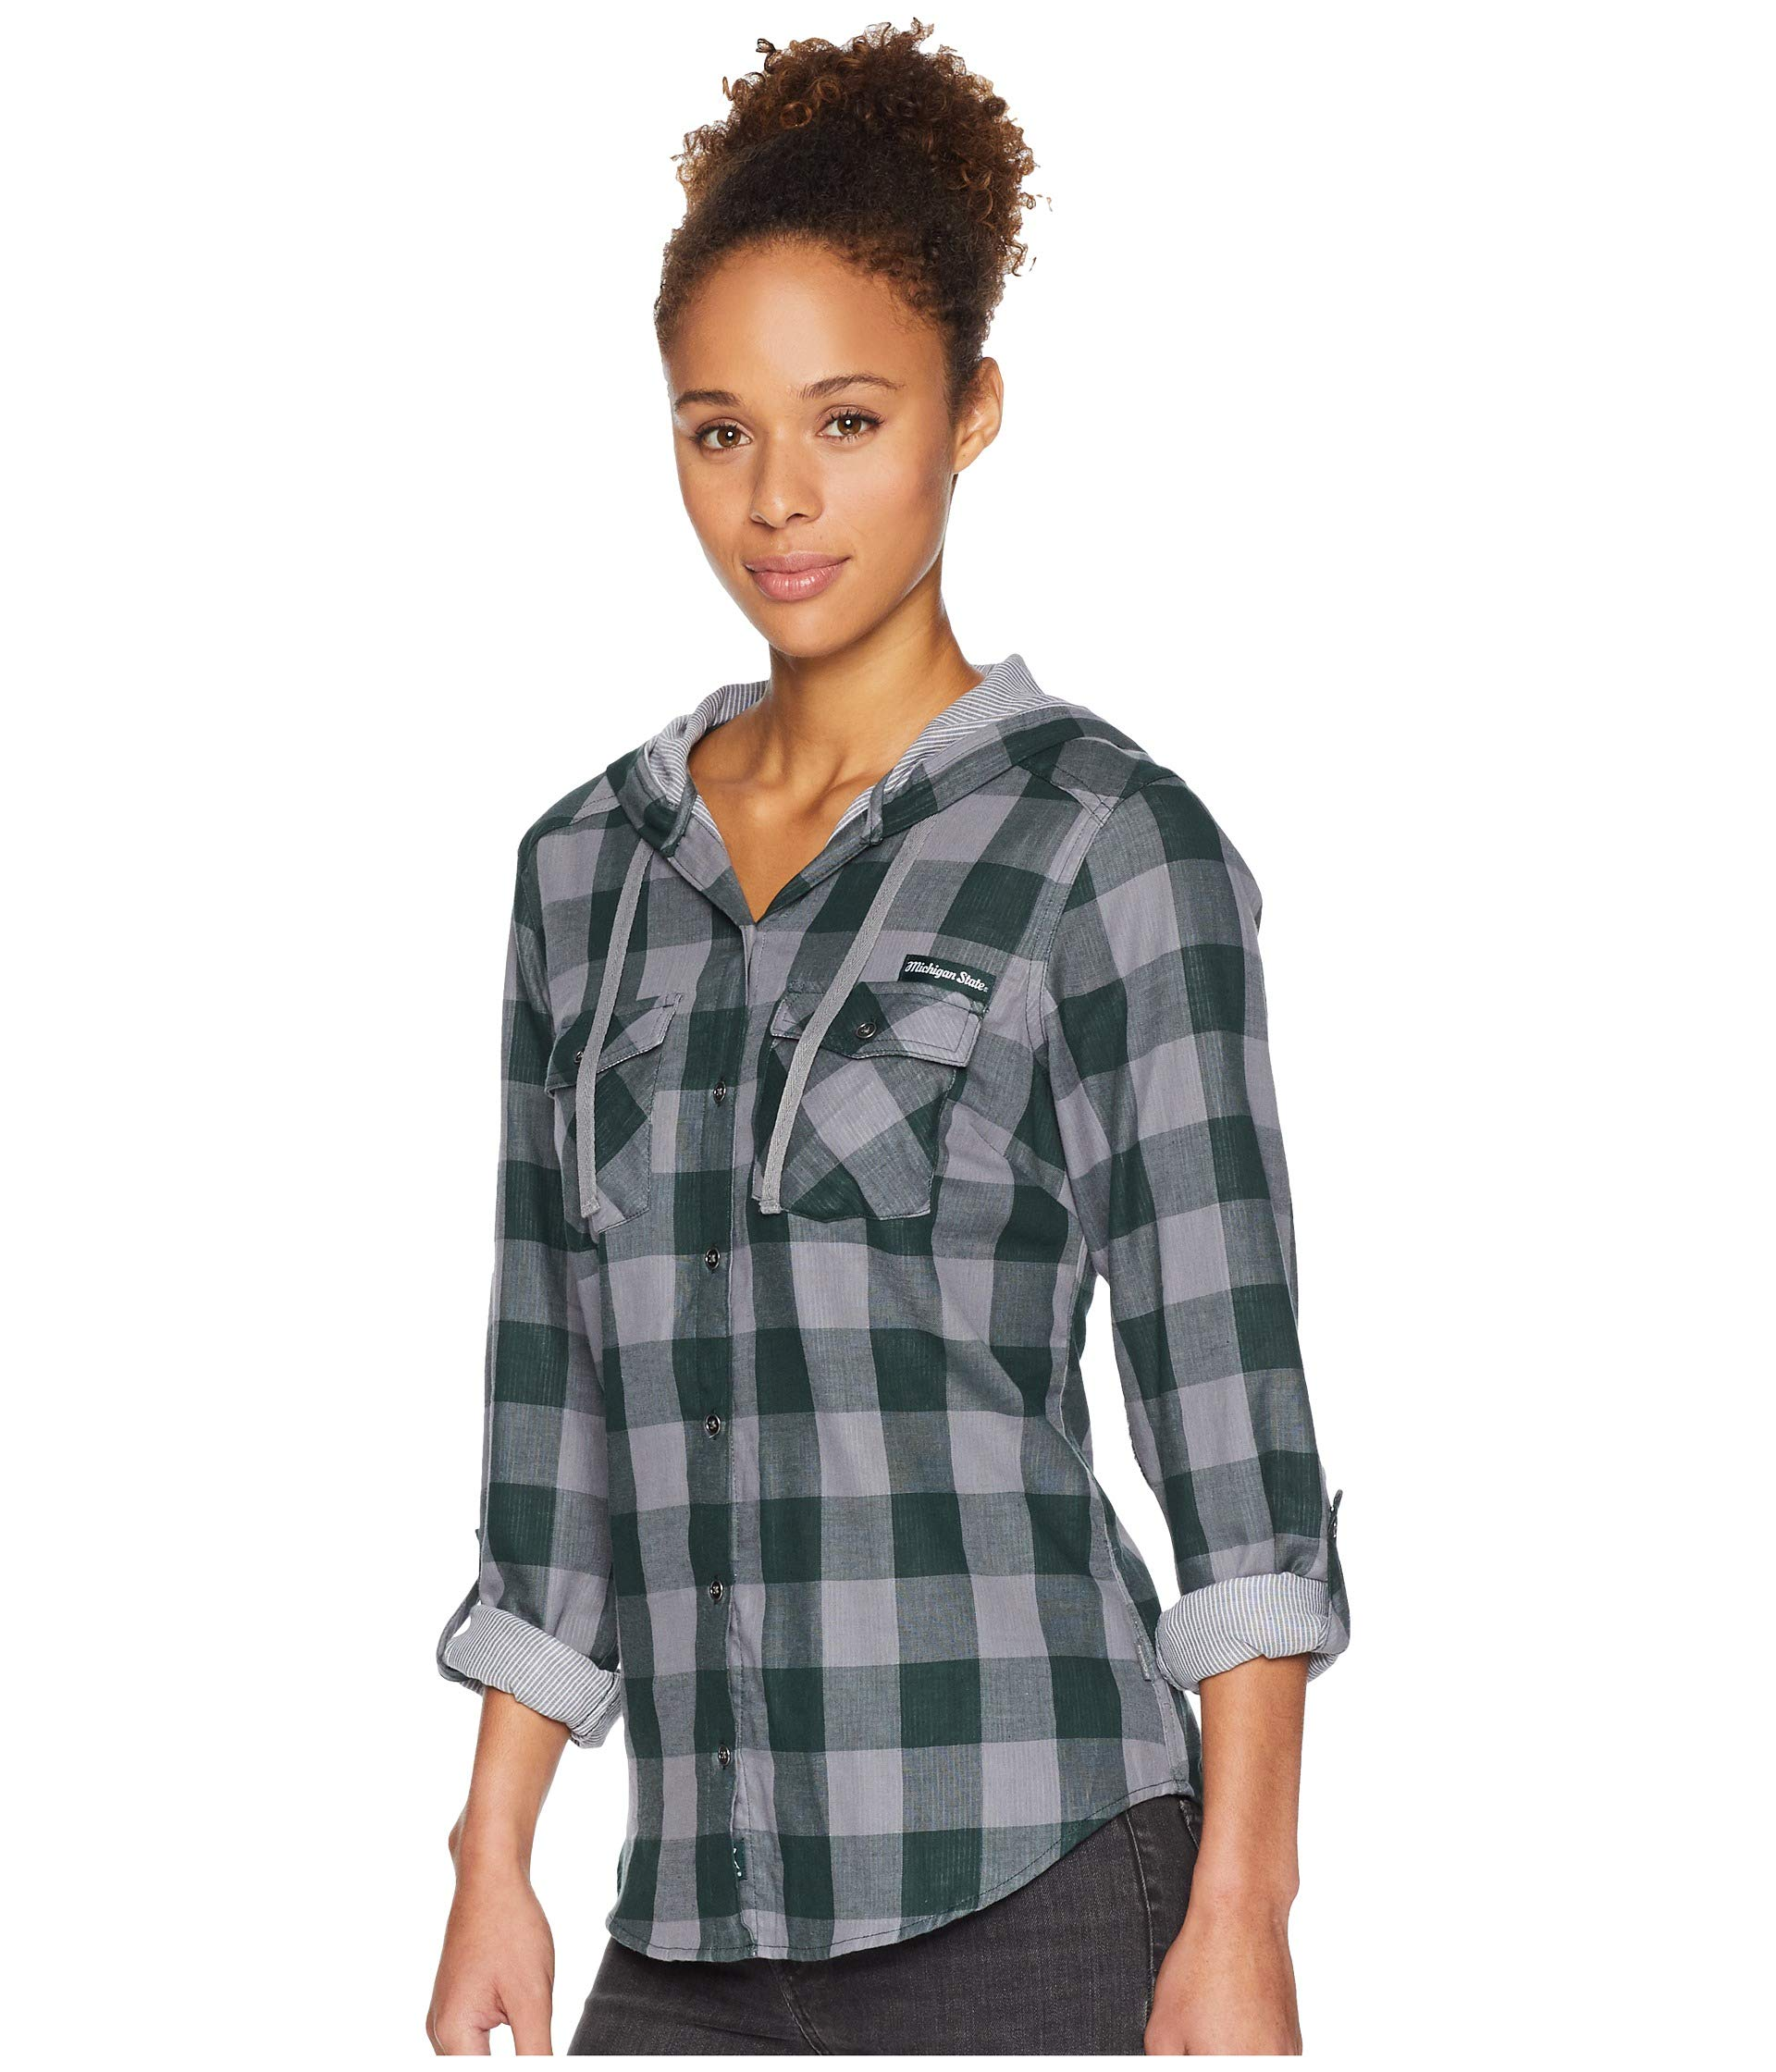 Columbia Shirt Check Hooded Long Times spruce Two™ Collegiate Ms Sleeve rq1paPrW